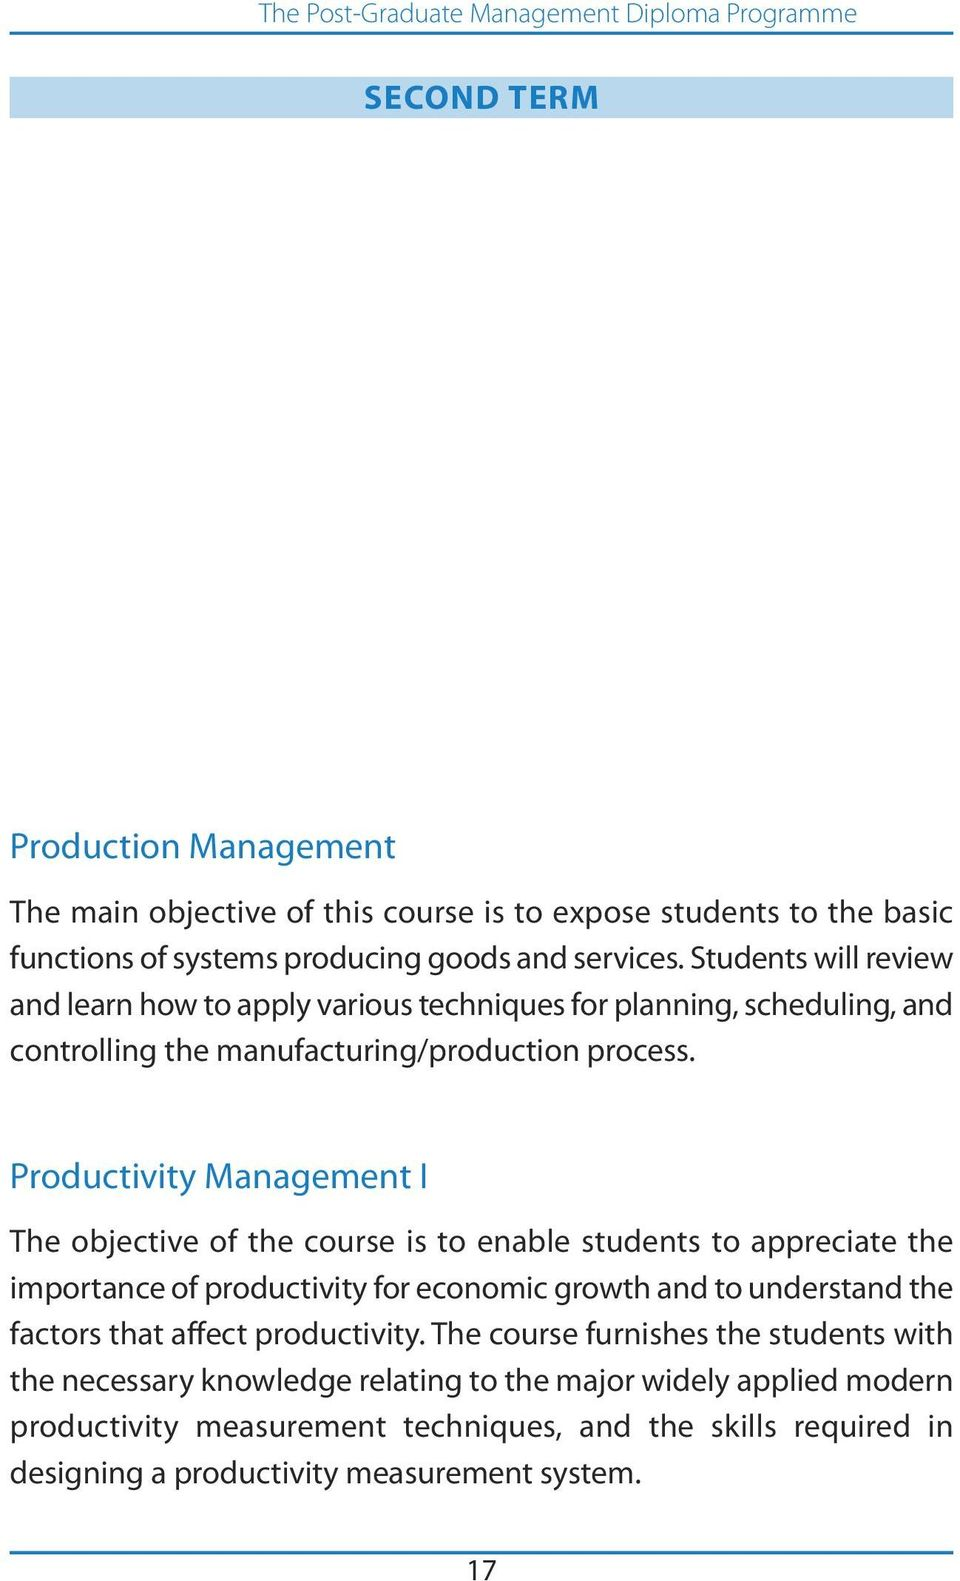 Productivity Management I The objective of the course is to enable students to appreciate the importance of productivity for economic growth and to understand the factors that